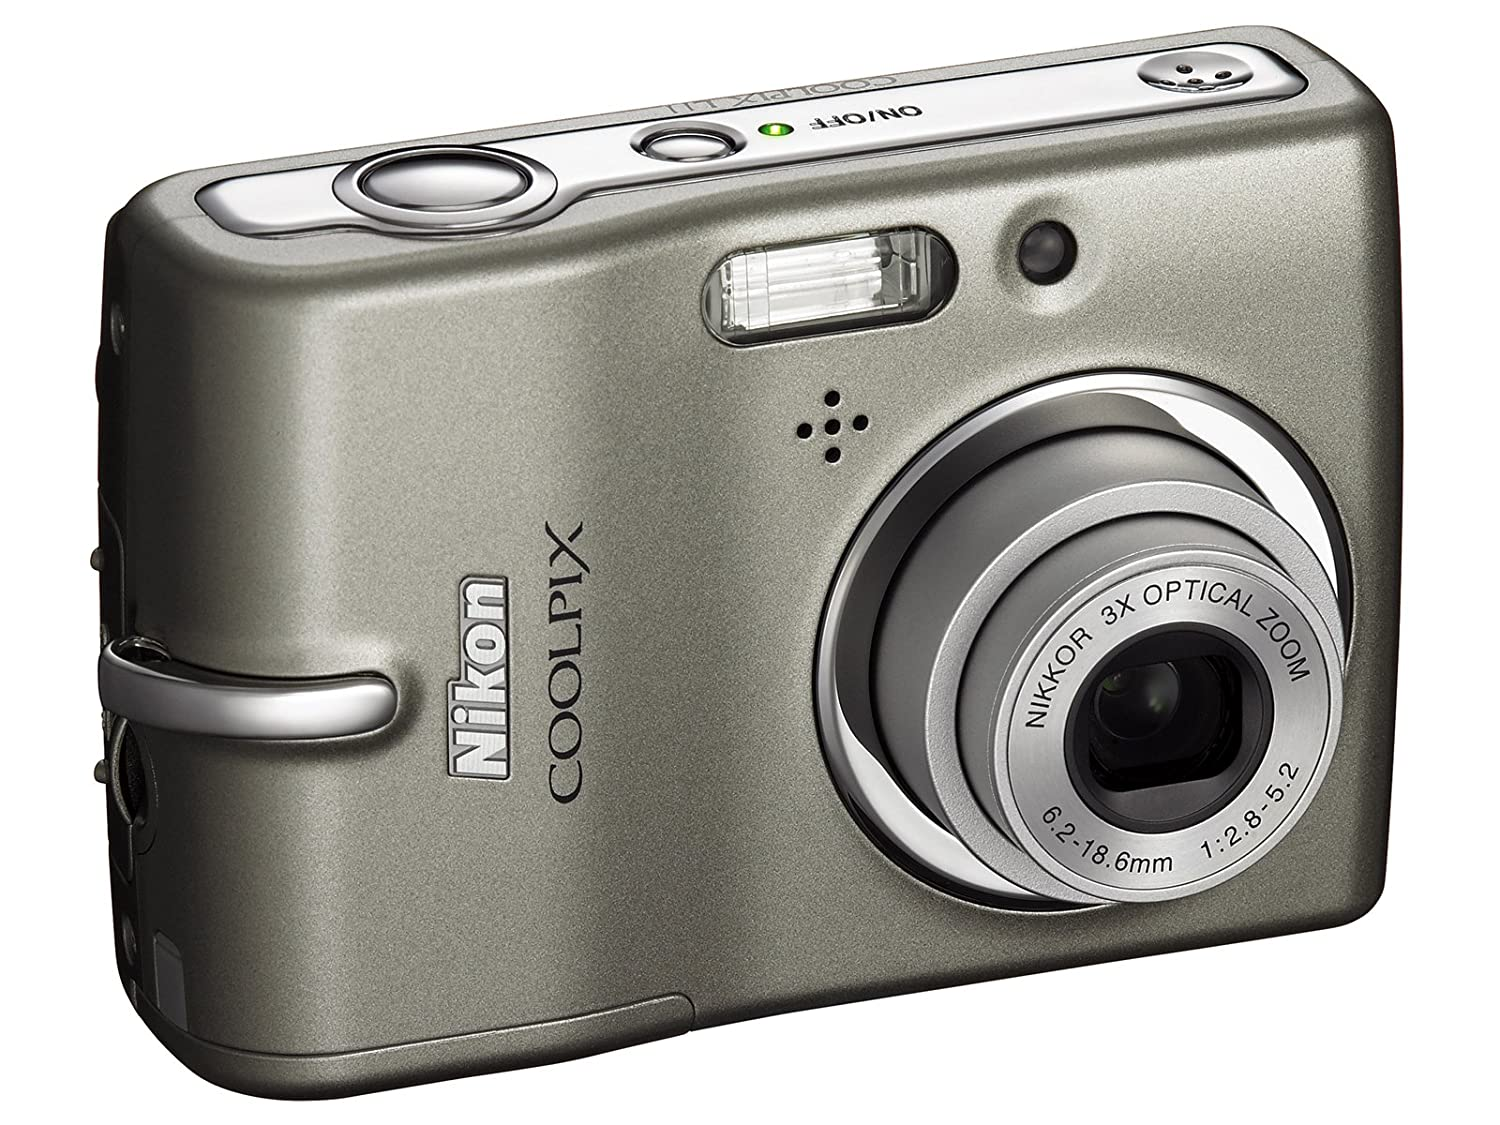 manual nikon coolpix l11 user guide manual that easy to read u2022 rh mobiservicemanual today